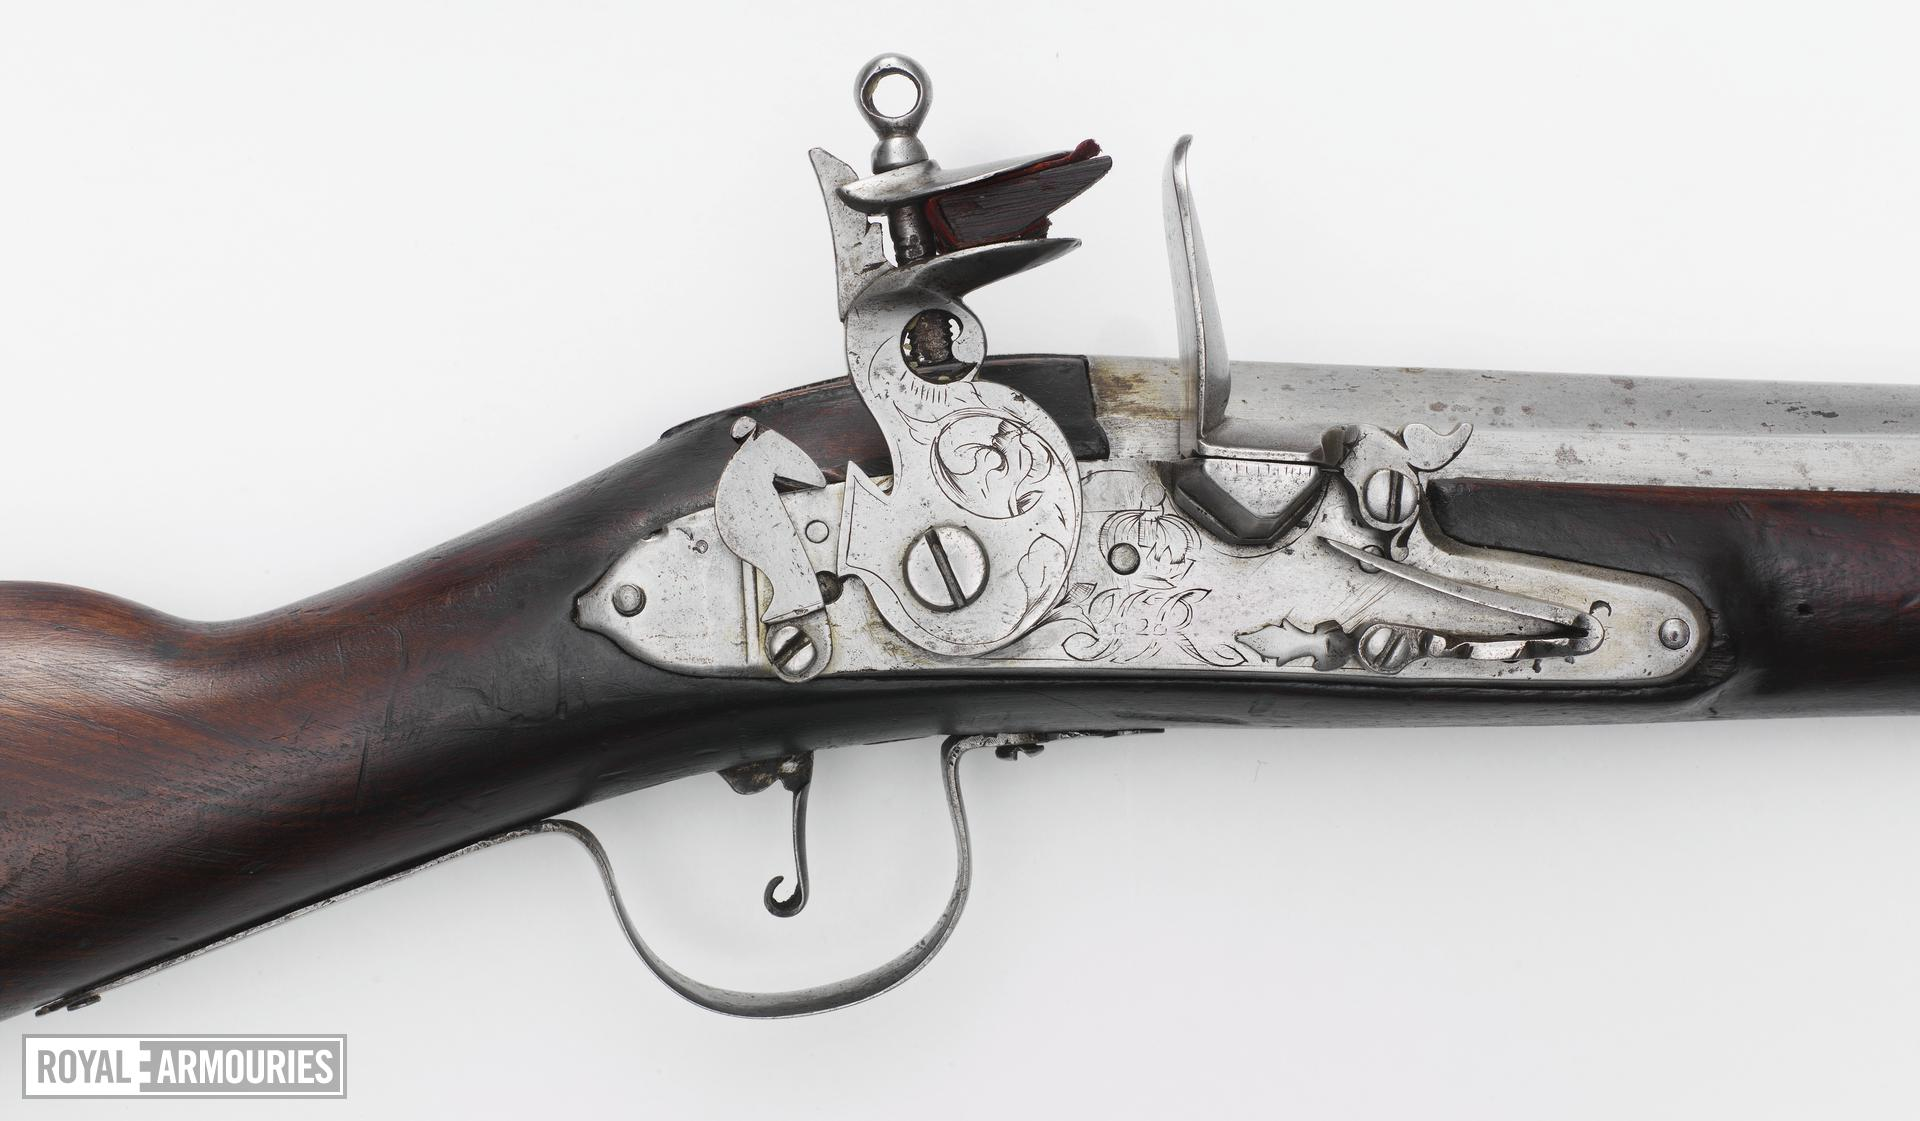 Flintlock muzzle-loading military grenade musket - By I. Hartwell